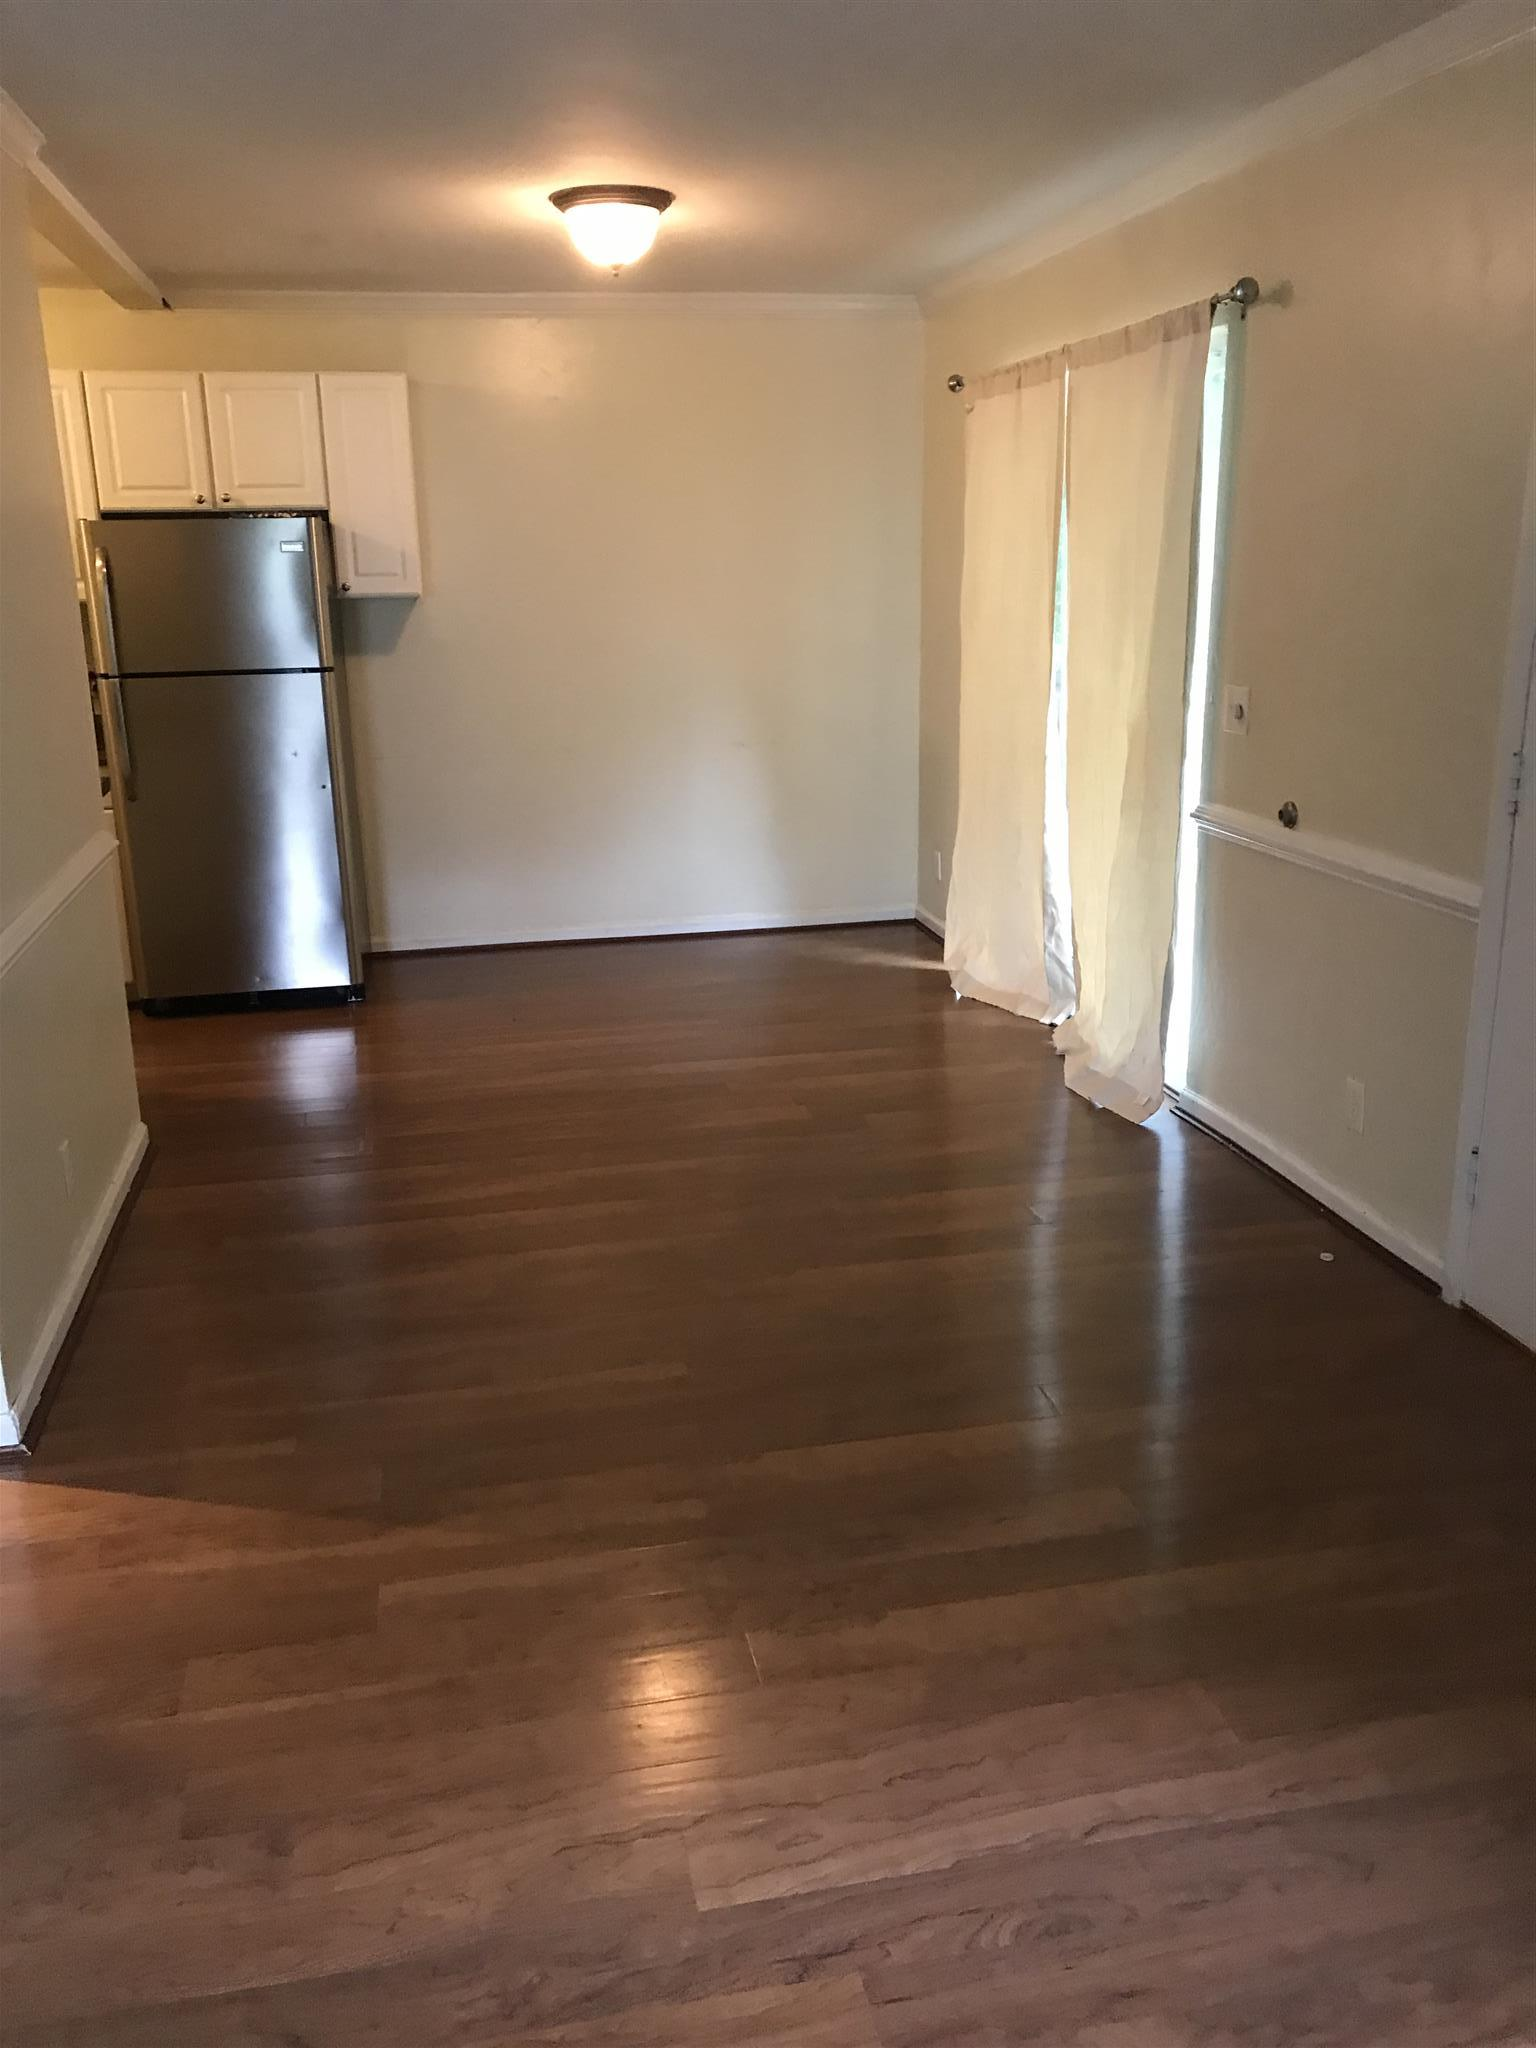 $105,000 - 2Br/2Ba -  for Sale in Caldwell Court, Nashville